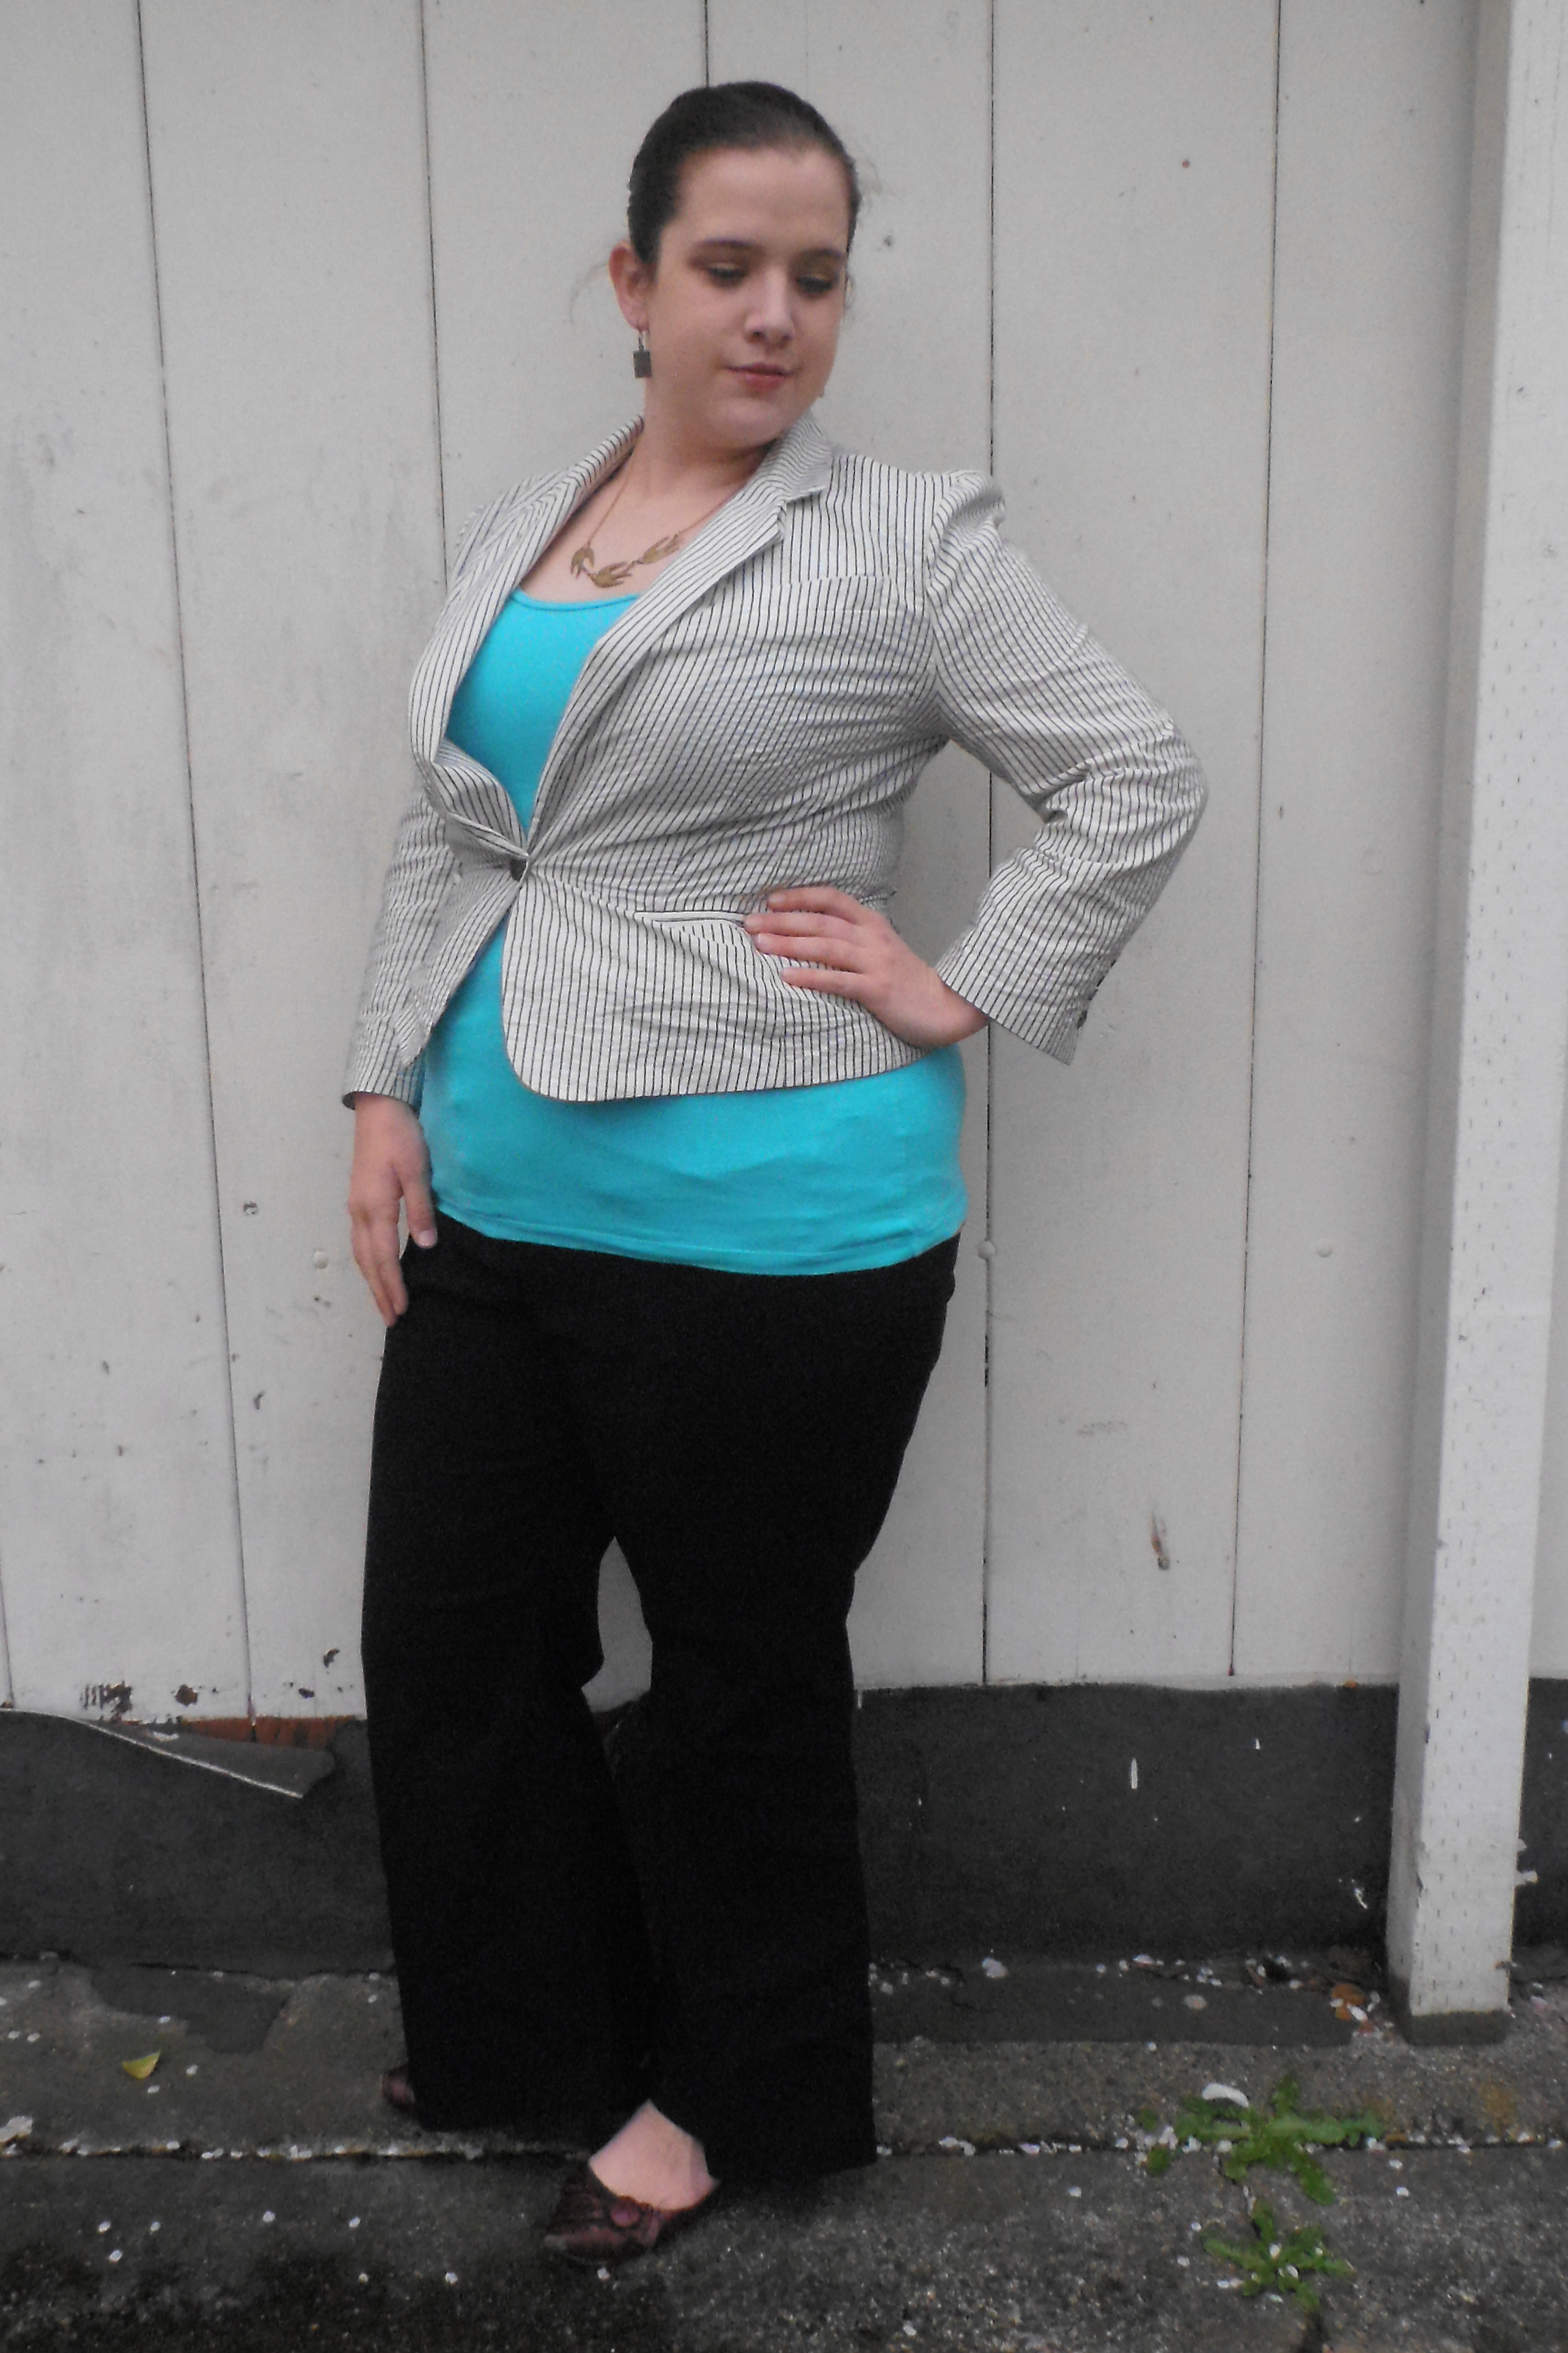 top, Energie at Fred Meyer ; pants, Lane Bryant ; shoes, Classified